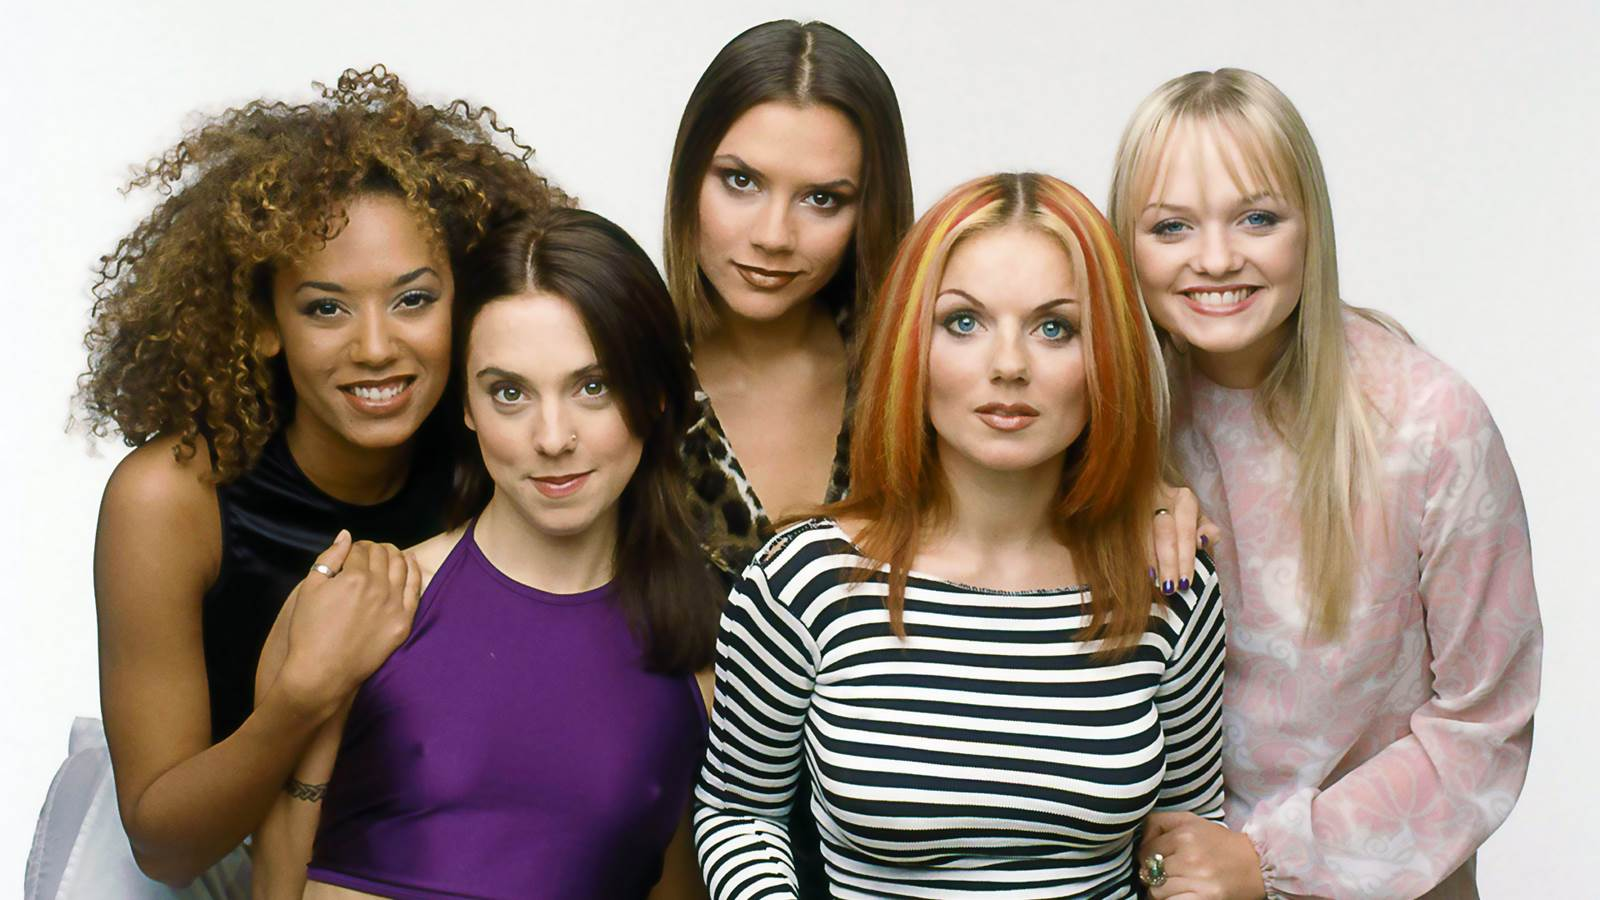 Spice Girls World Tour Próximamente Pero Sin Posh Spice